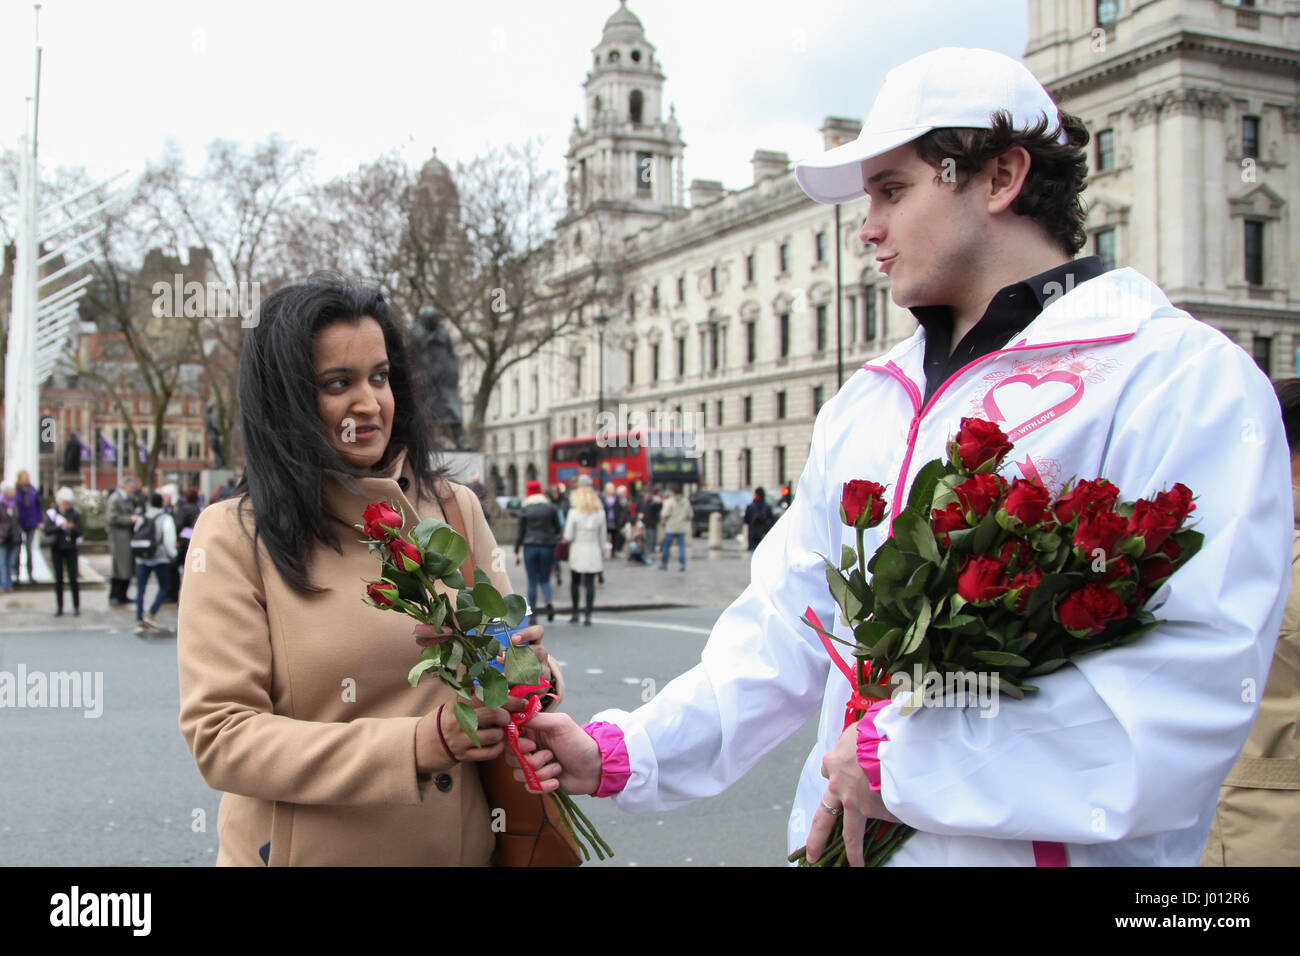 Maxim Galkin fell in love with fans of his rare photo 03.02.2018 77